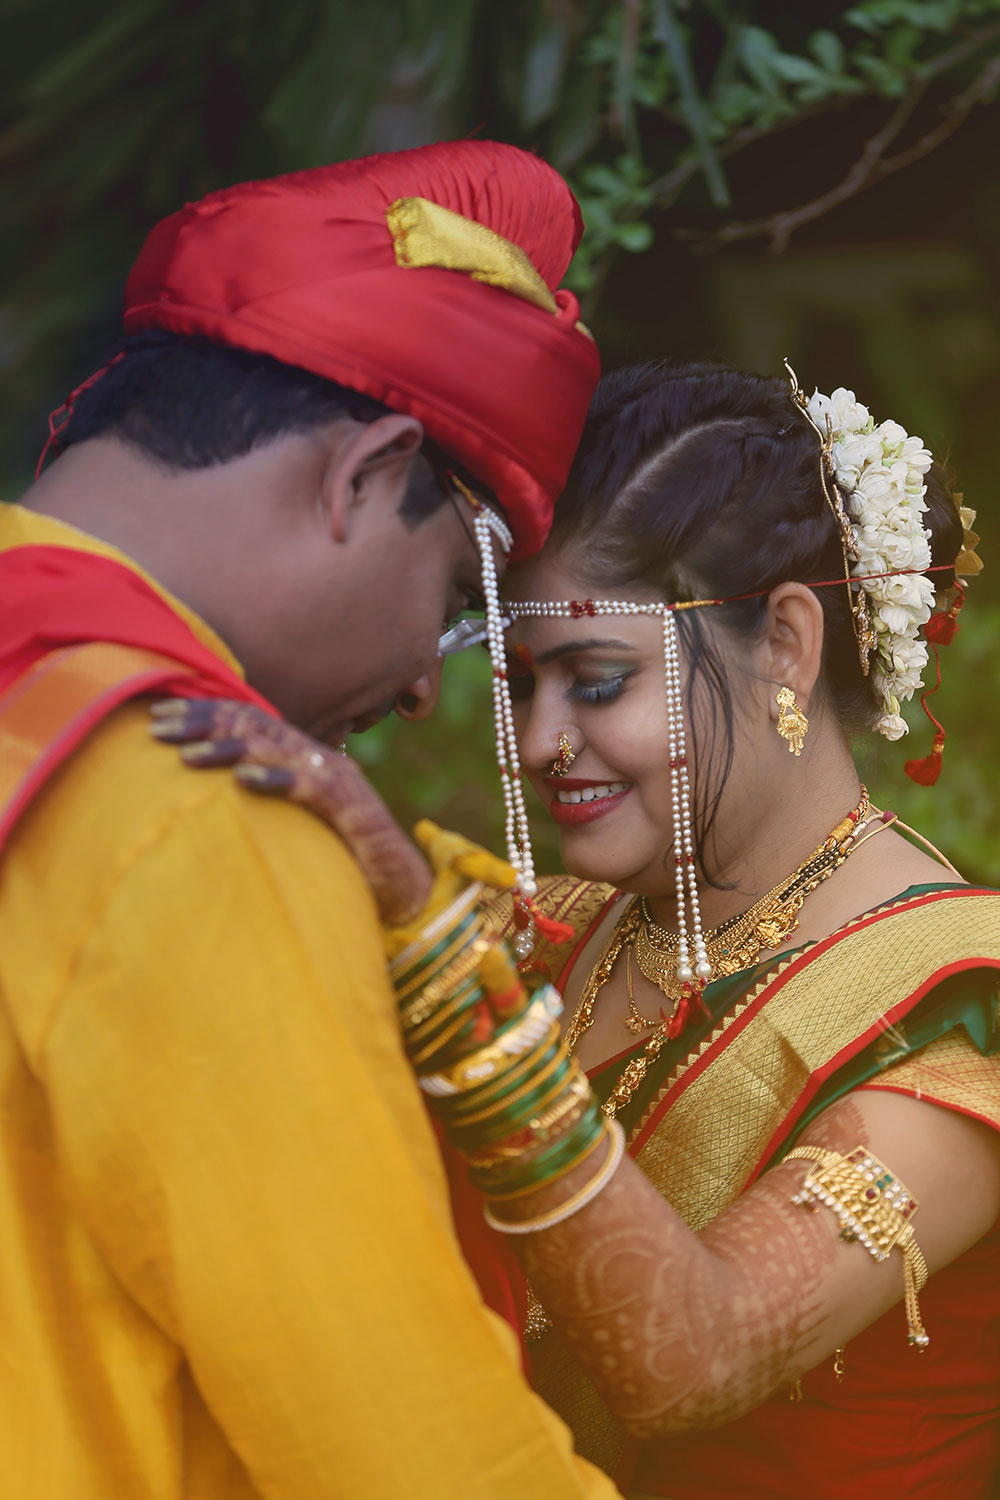 wedding-shoot@9123222$img-5.jpg